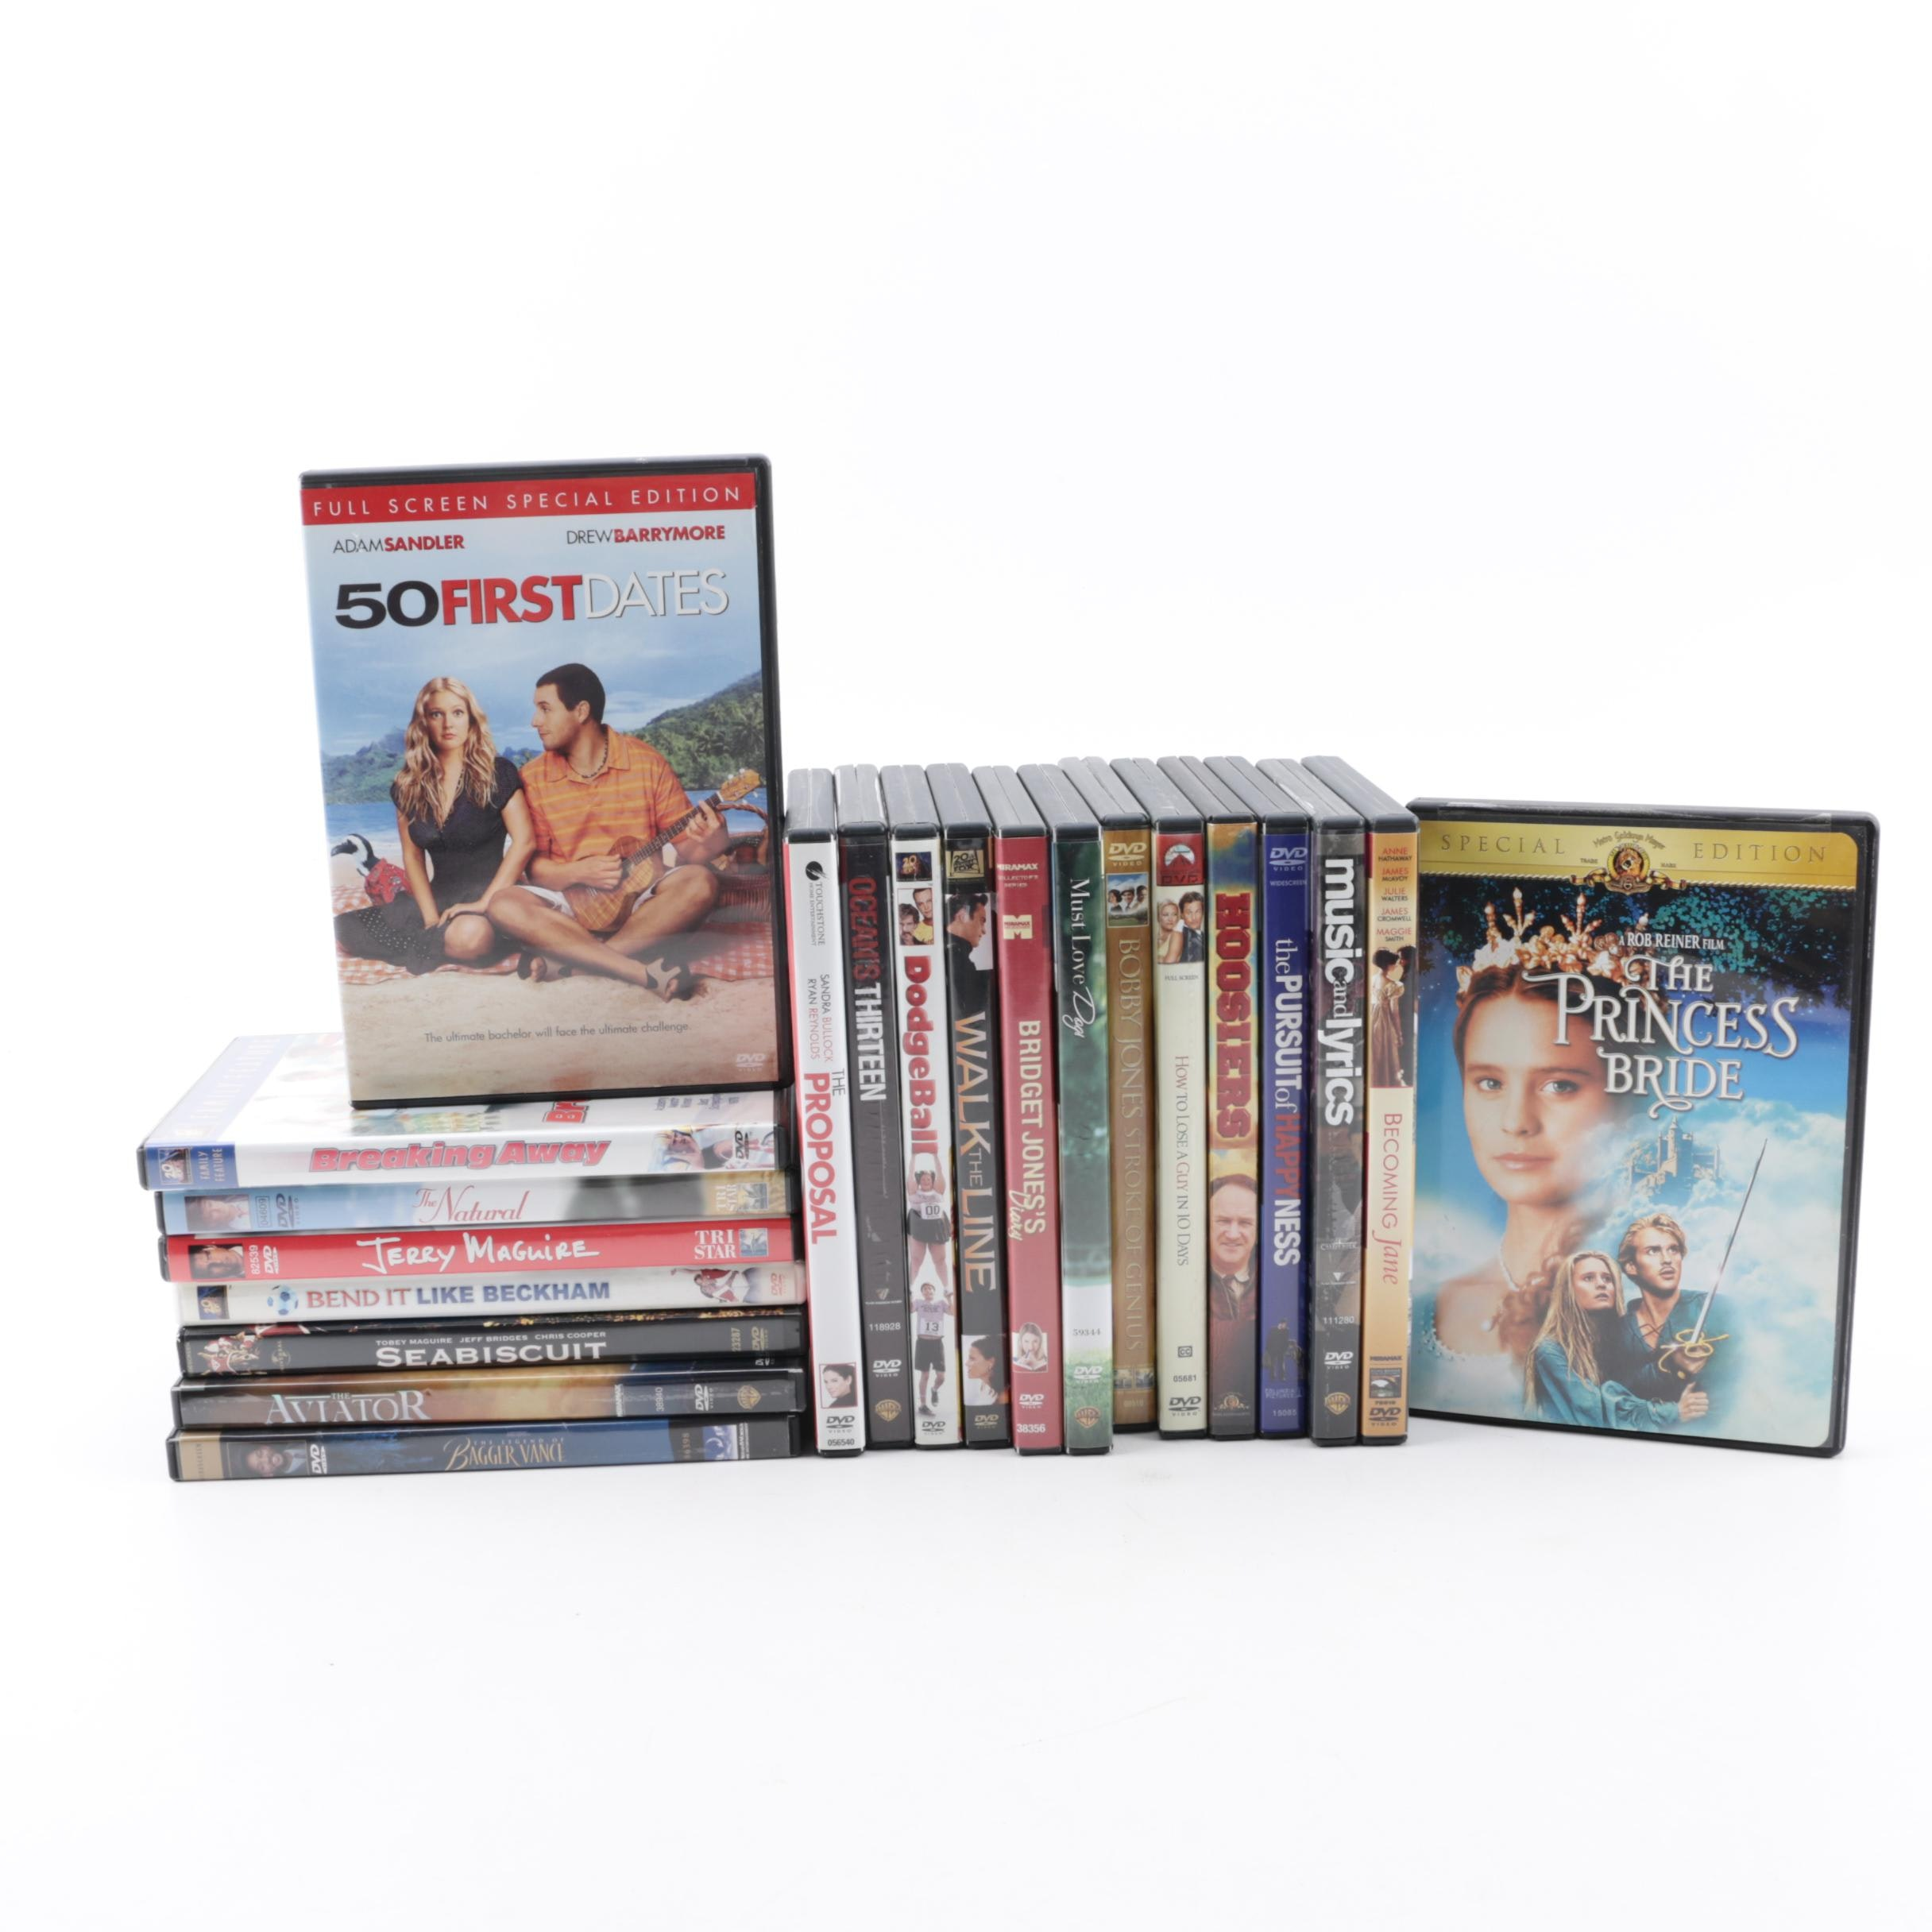 """Comedy, Drama and Romance DVDs including """"Breaking Away"""", """"Ocean's Thirteen"""""""